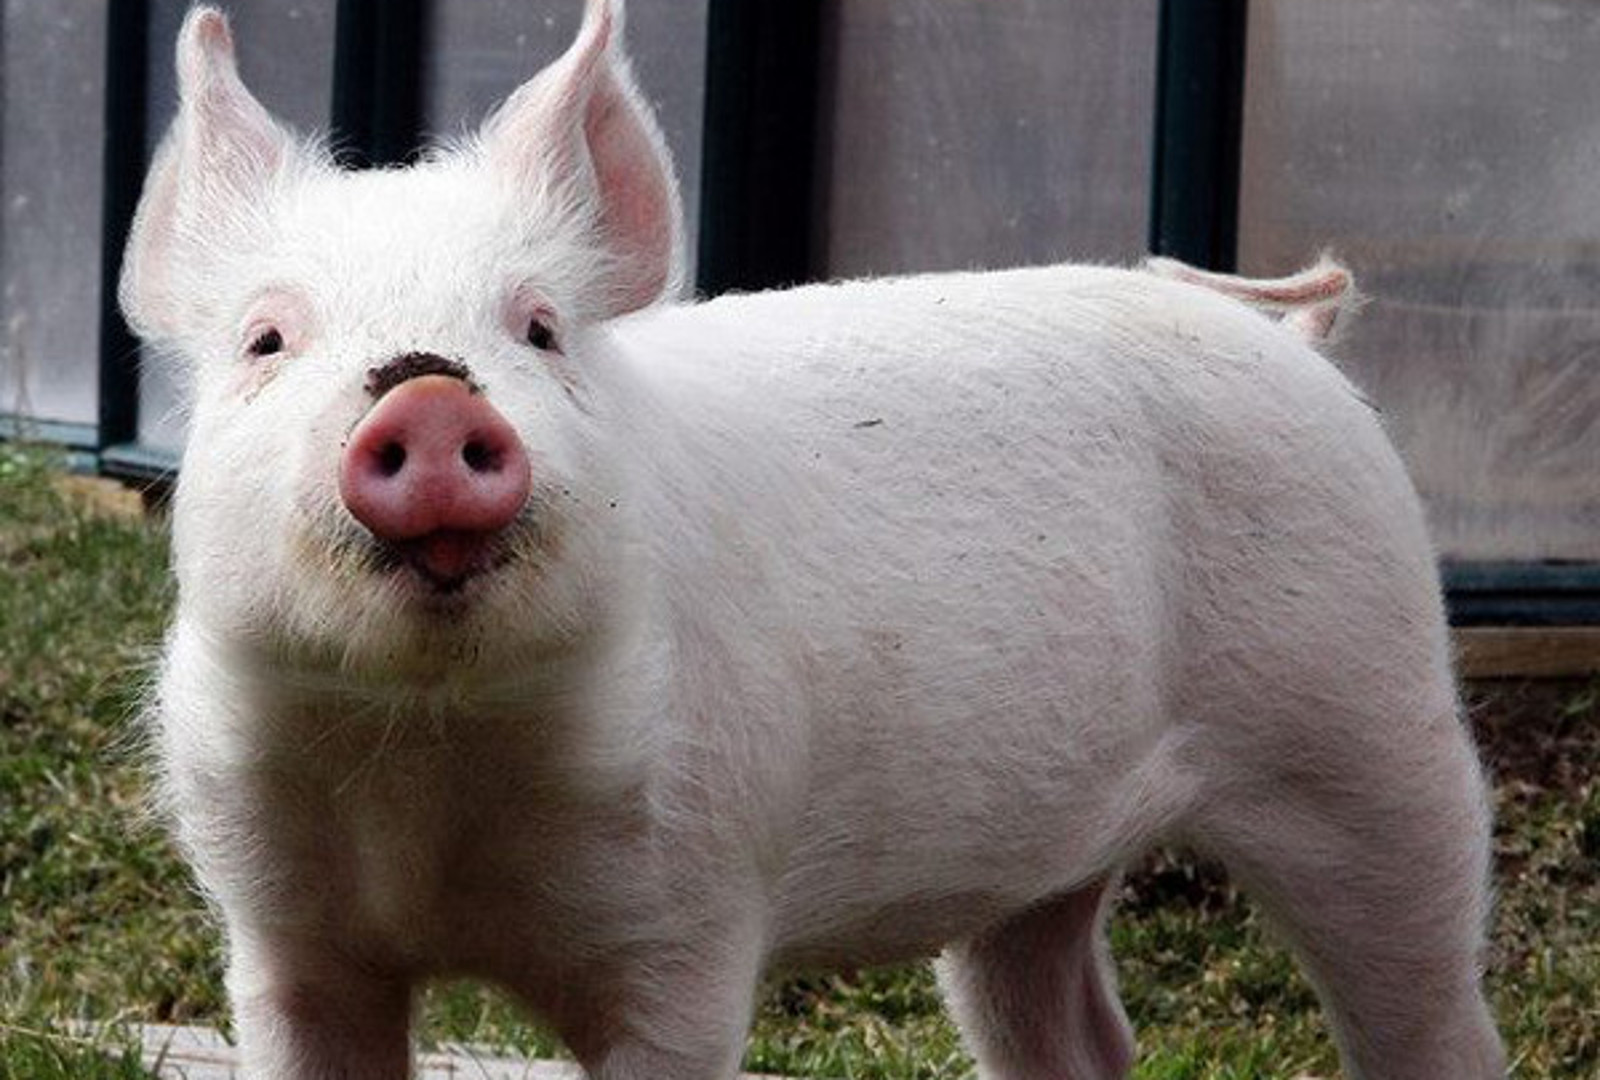 Meet Amelia, the 'Worst Pig in the World.' Rescued From an Animal Hoarder, and Now Living Free in a Sanctuary